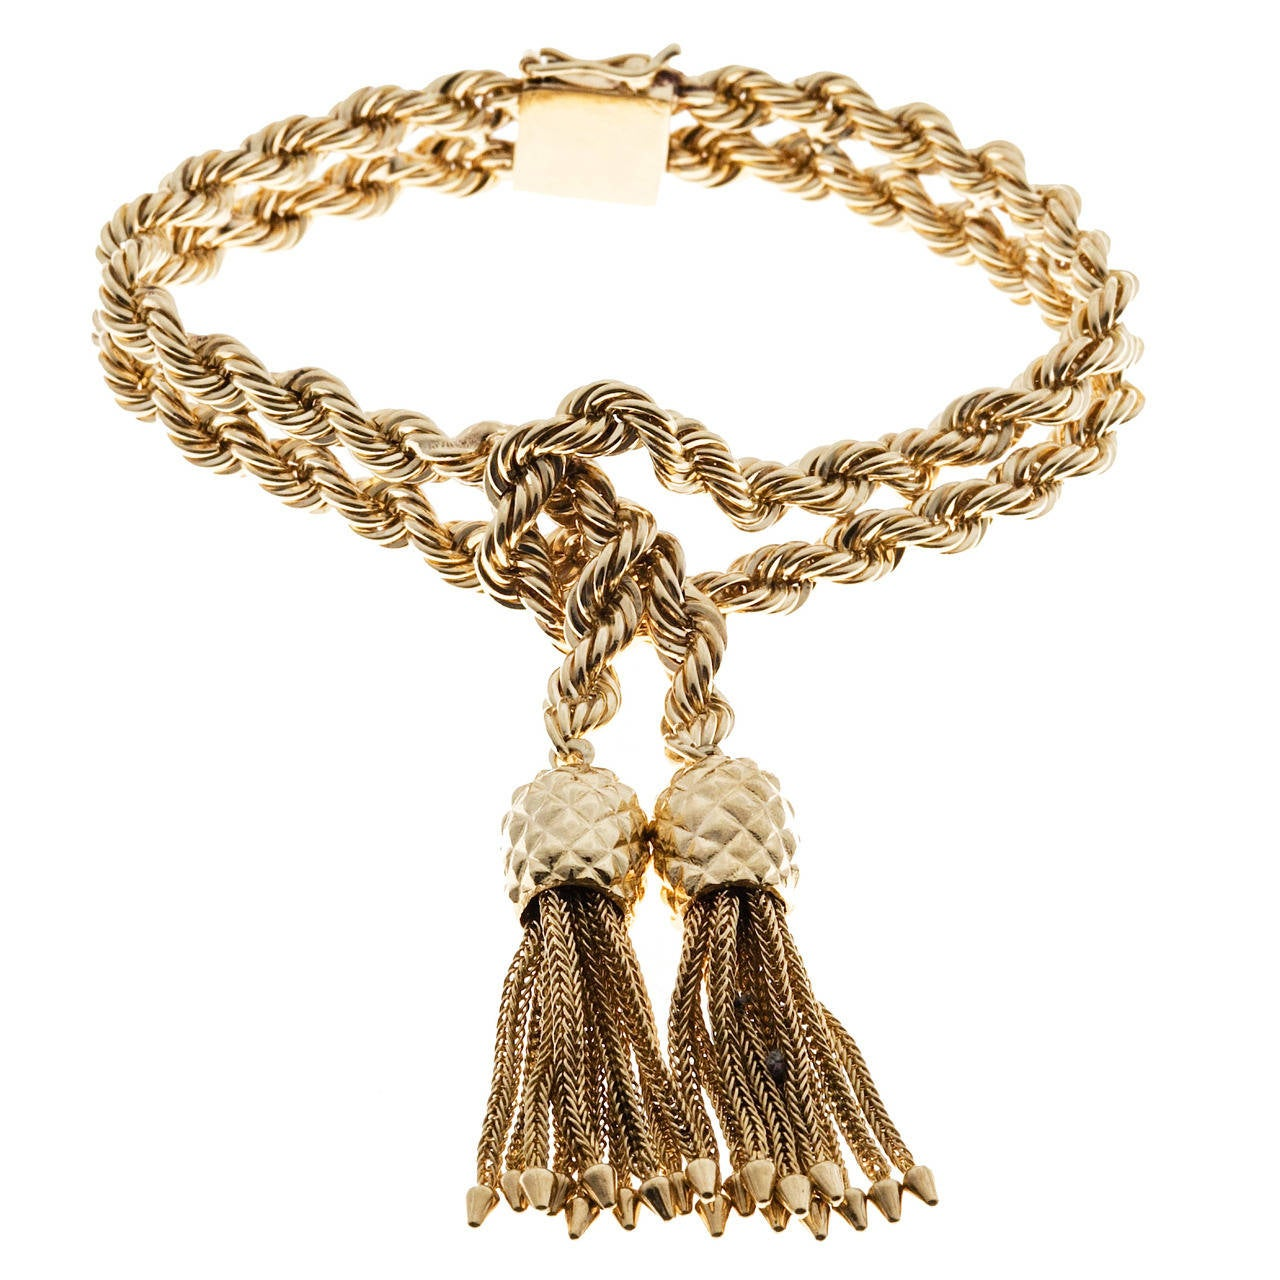 Tiffany & Co. Rope Knot Tassel Gold Bracelet 1